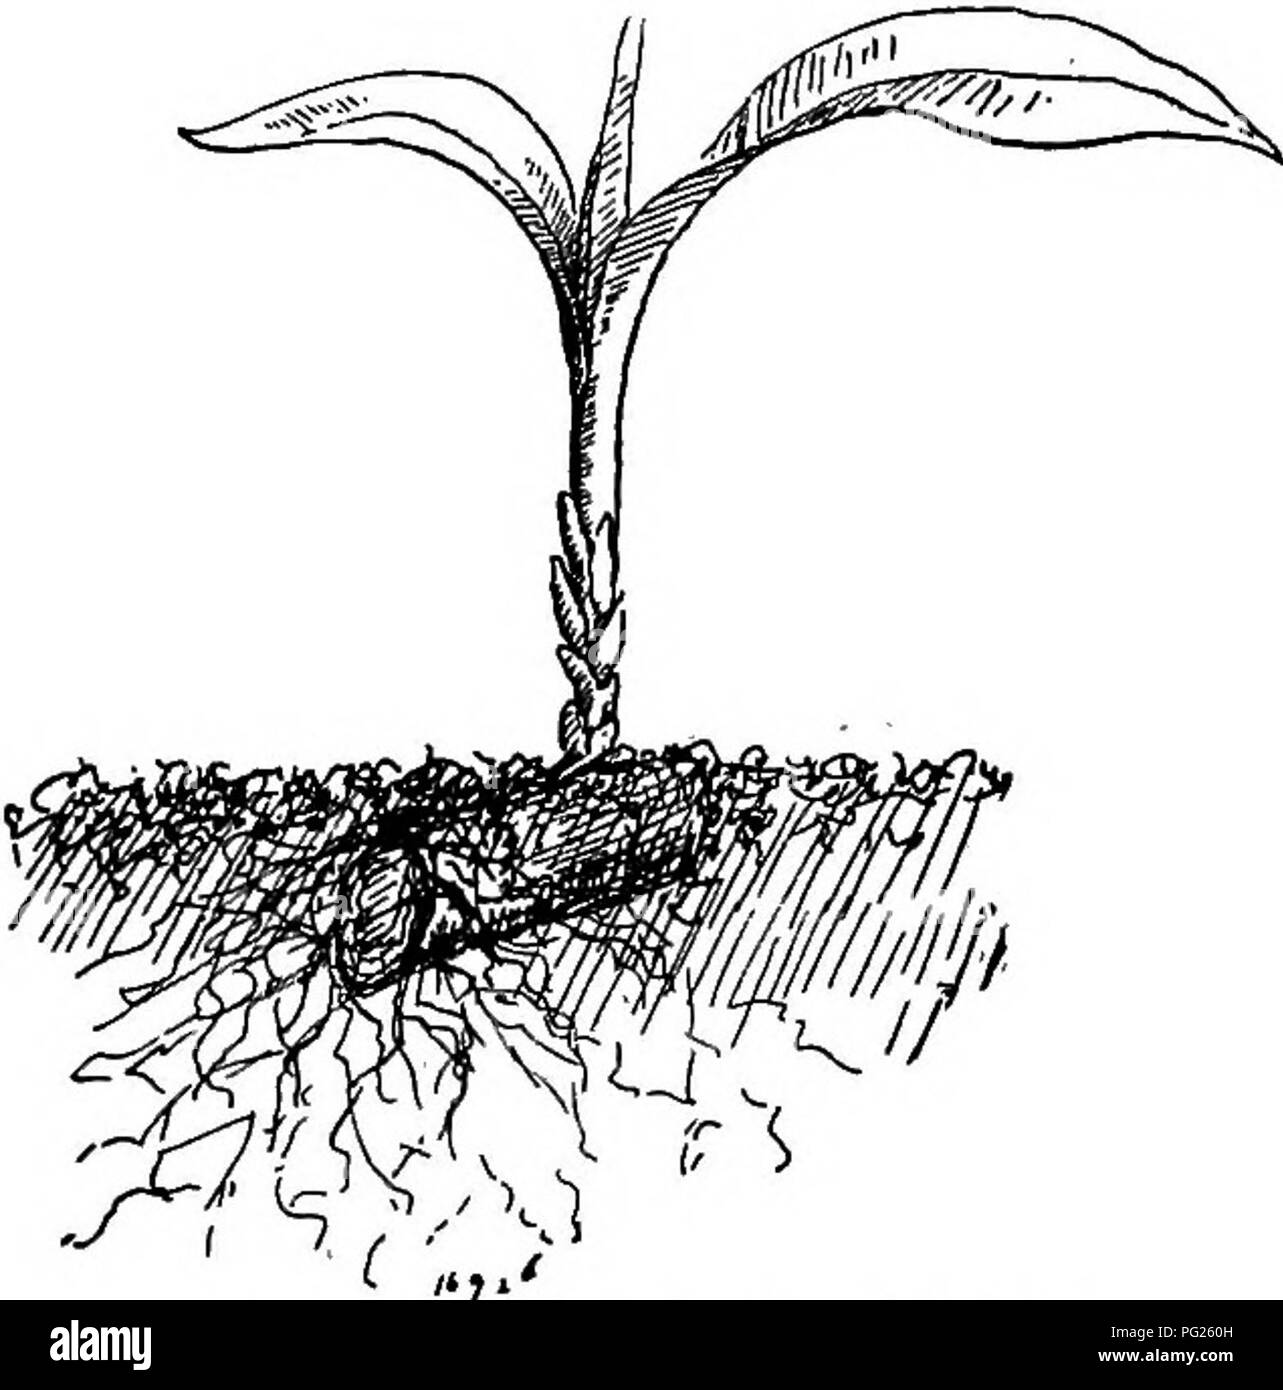 . The nursery-book; a complete guide to the multiplication of plants ... Gardening; Plant propagation. CUTTINGS OF ROOTS. 6l tings possess no buds whatever, the buds developing after the cutting is planted. Roots are cut into pieces from i to 3 inches long, and are planted hori- zontally in soil or moss. These cut- tings thrive best with bottom heat, but blackberries and some other plants grow fairly well with ordi- nary outdoor treatment. A root cutting of the blackberry is shown in Fig. 62. (See Blackberry, in Chapter VI.) A growing dra- caena root cutting is exhibited in Fig. 63. The cuttin - Stock Image